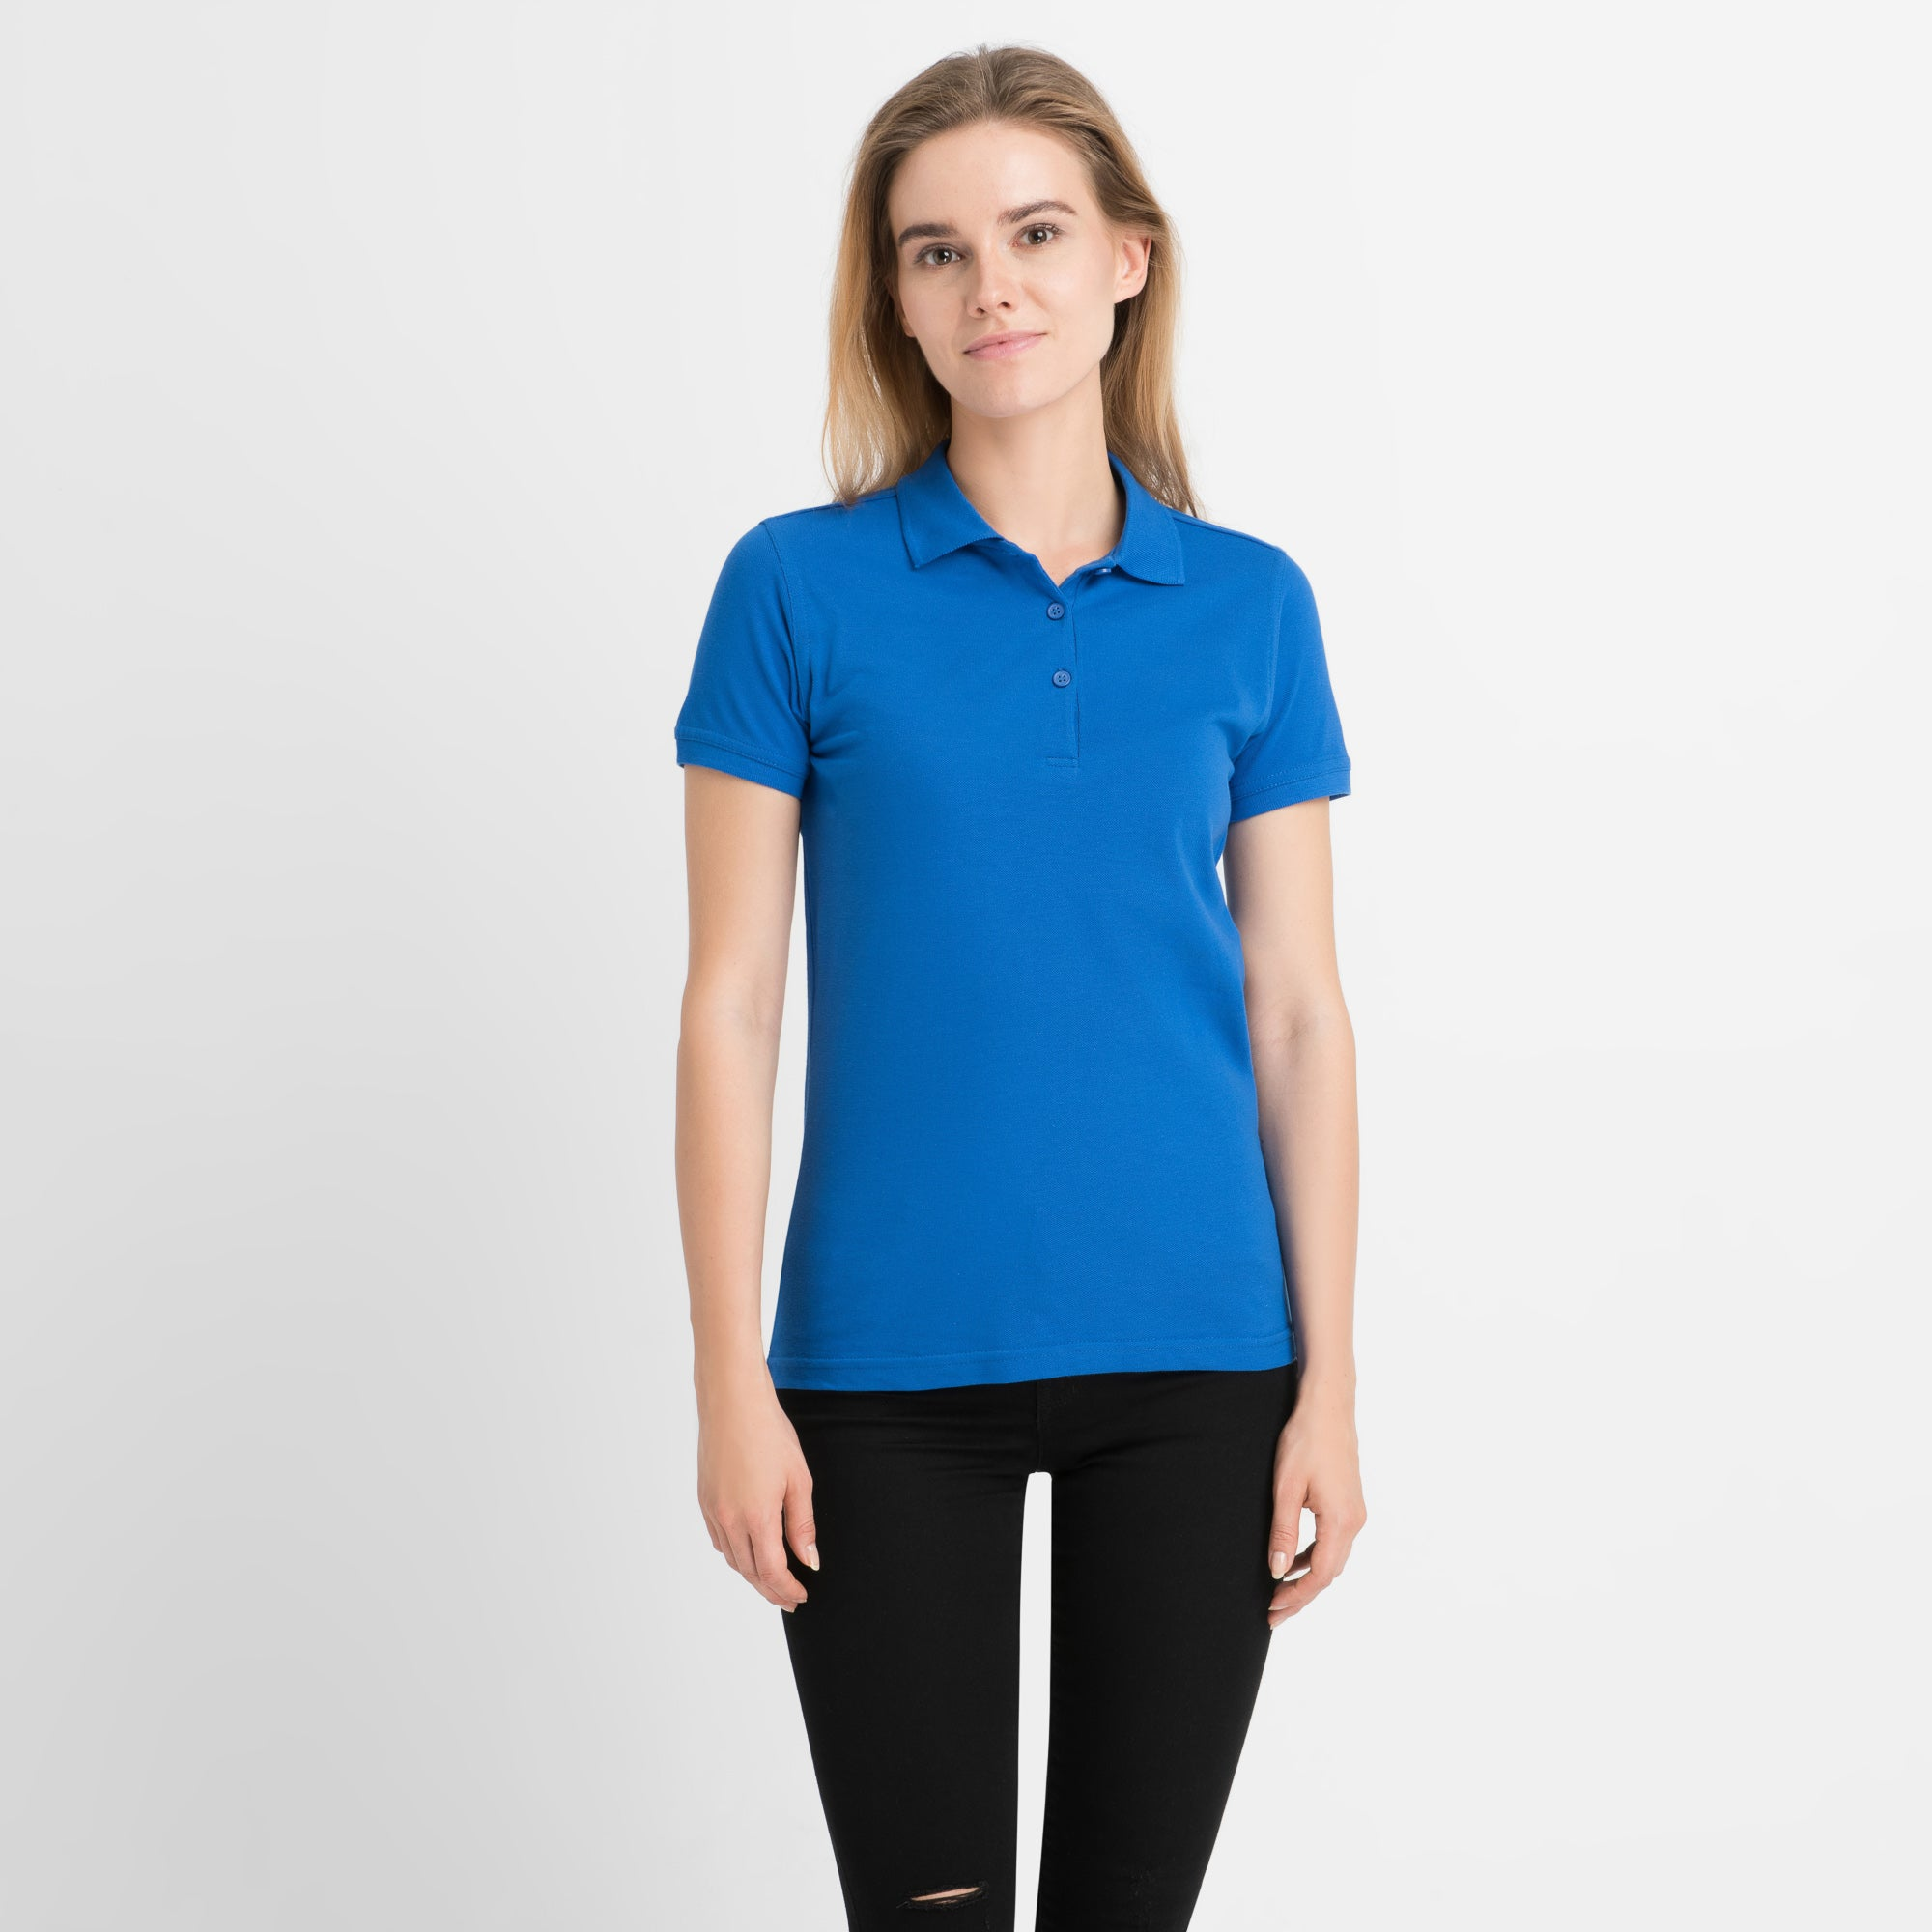 B&C BCPW457 Buyers Favourite Poloshirt Damen bei Textil One besticken